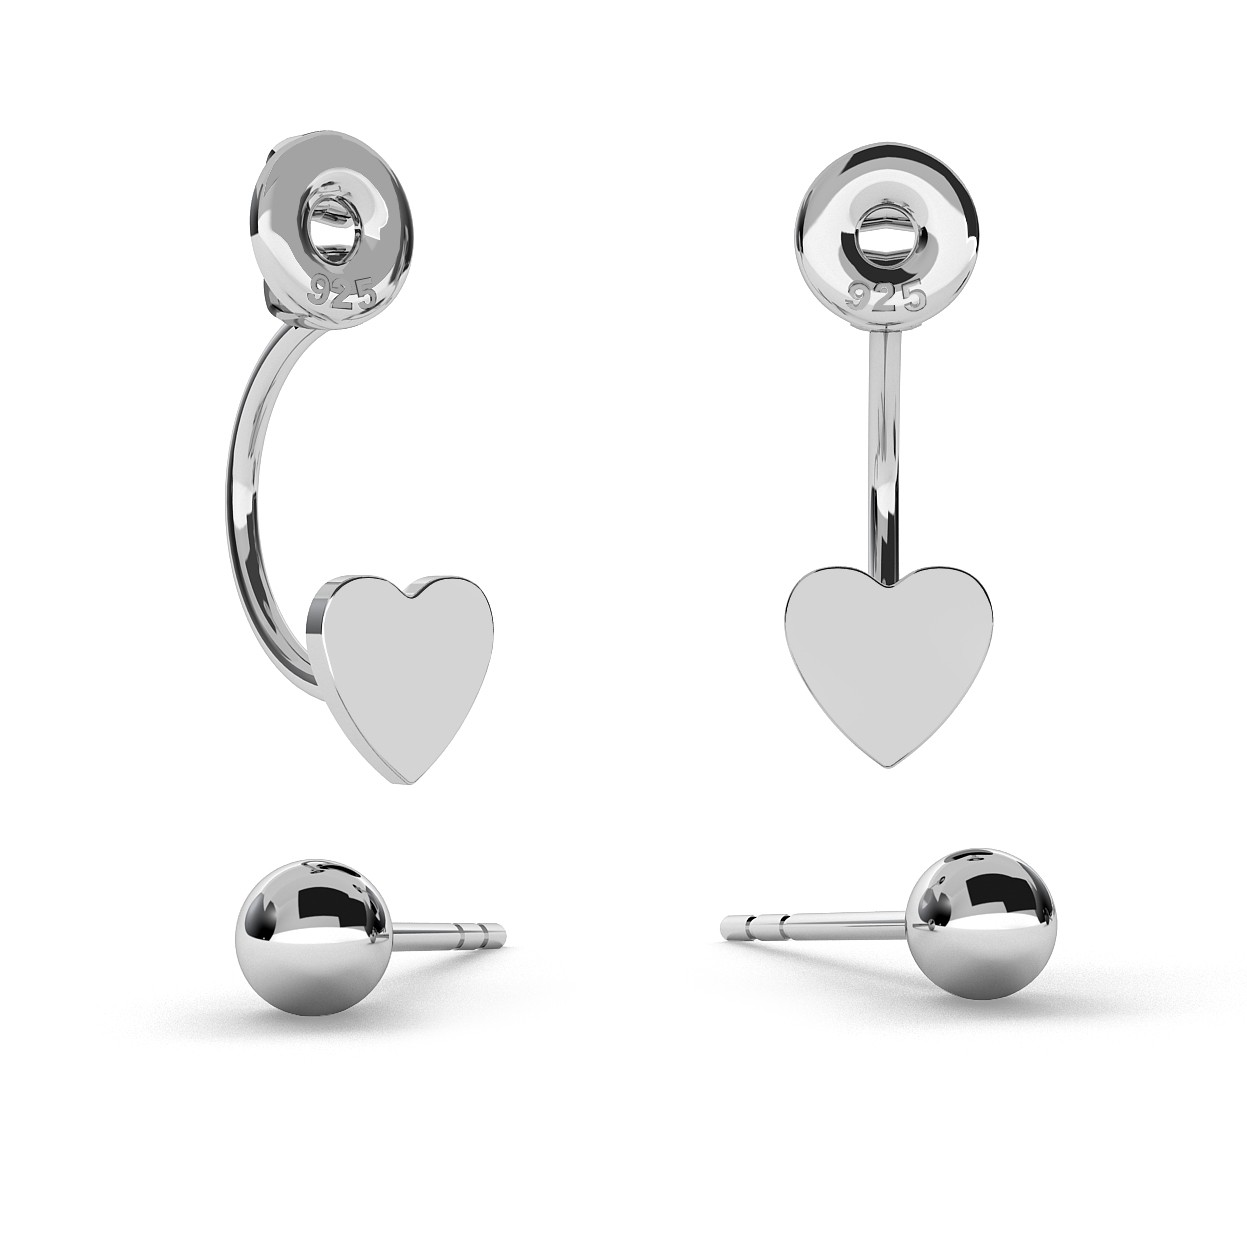 TRIBAL EARRINGS BALL & HEART, STERLING SILVER (925) RHODIUM OR GOLD PLATED